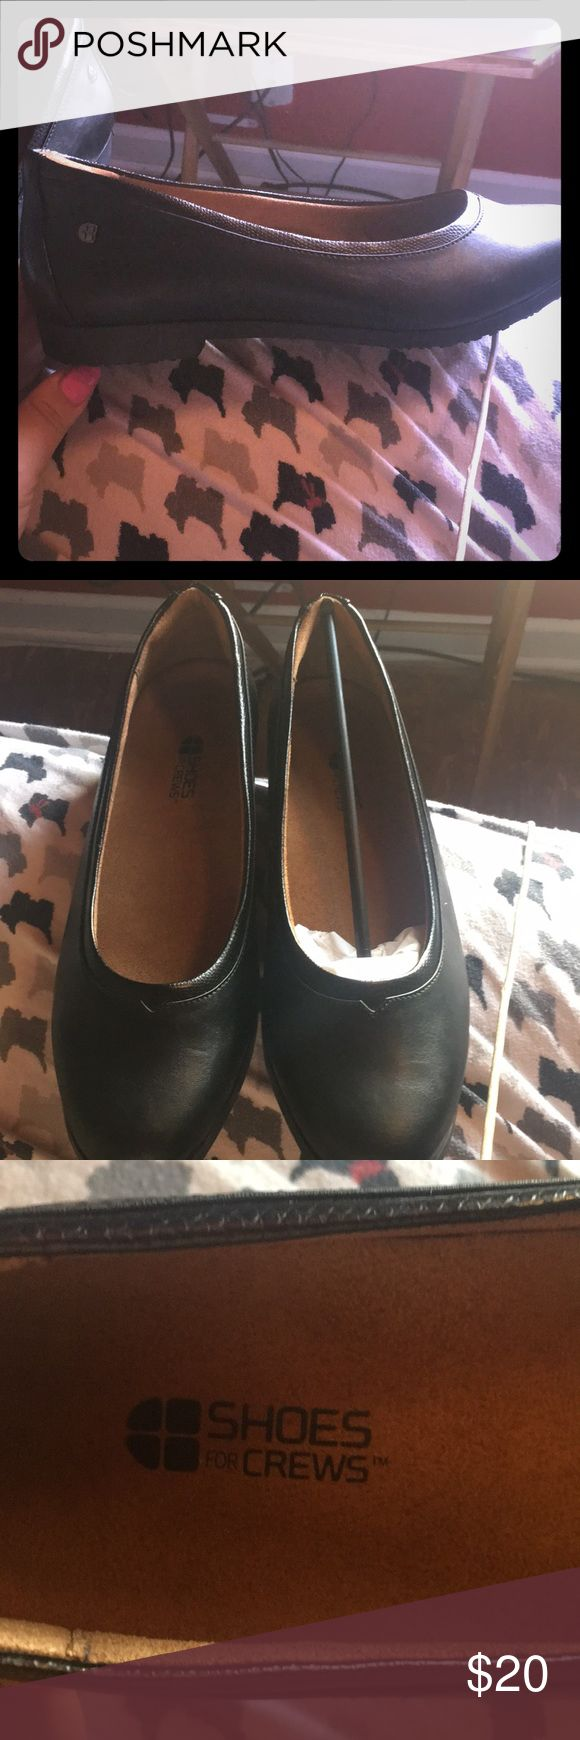 Black Slip Resistant Flats Size 10 Bought off shoes for crews website. New never worn. Slip resistant shoe for work. Very comfy. Black leather Shoes For Crews Shoes Flats & Loafers